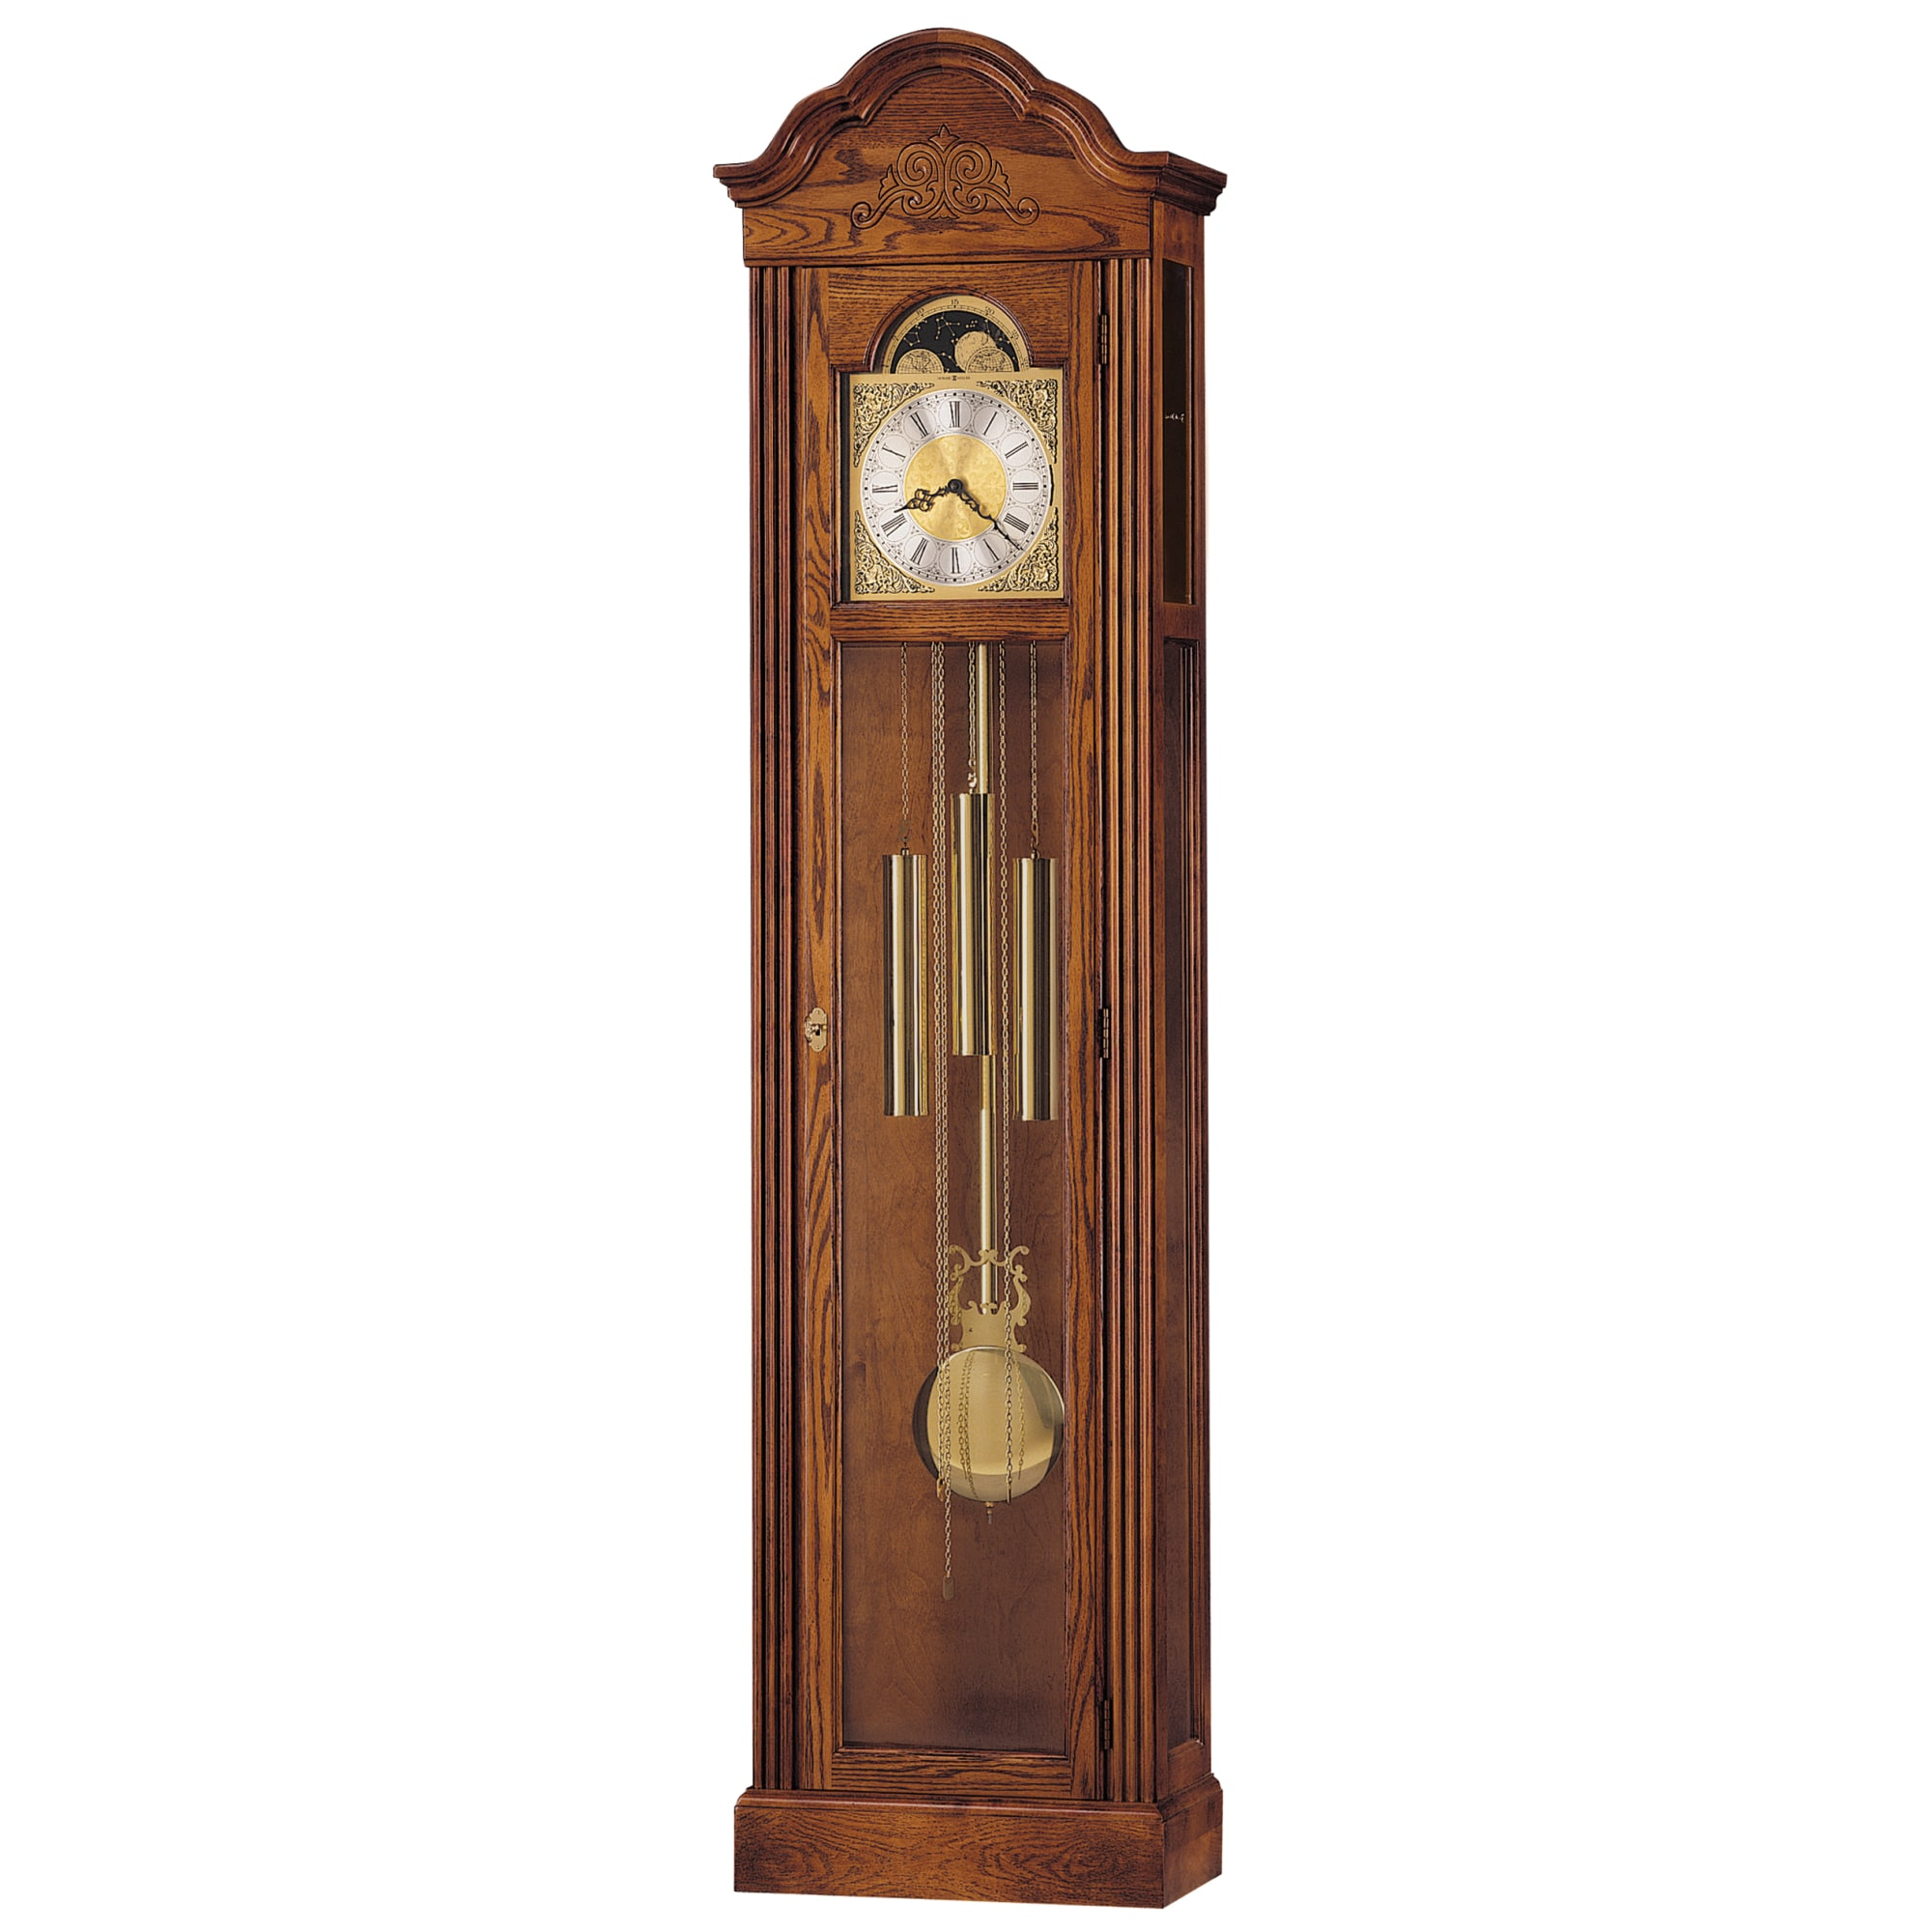 Image for Howard Miller Ashley Floor Clock 610-519 from Howard Miller Official Website